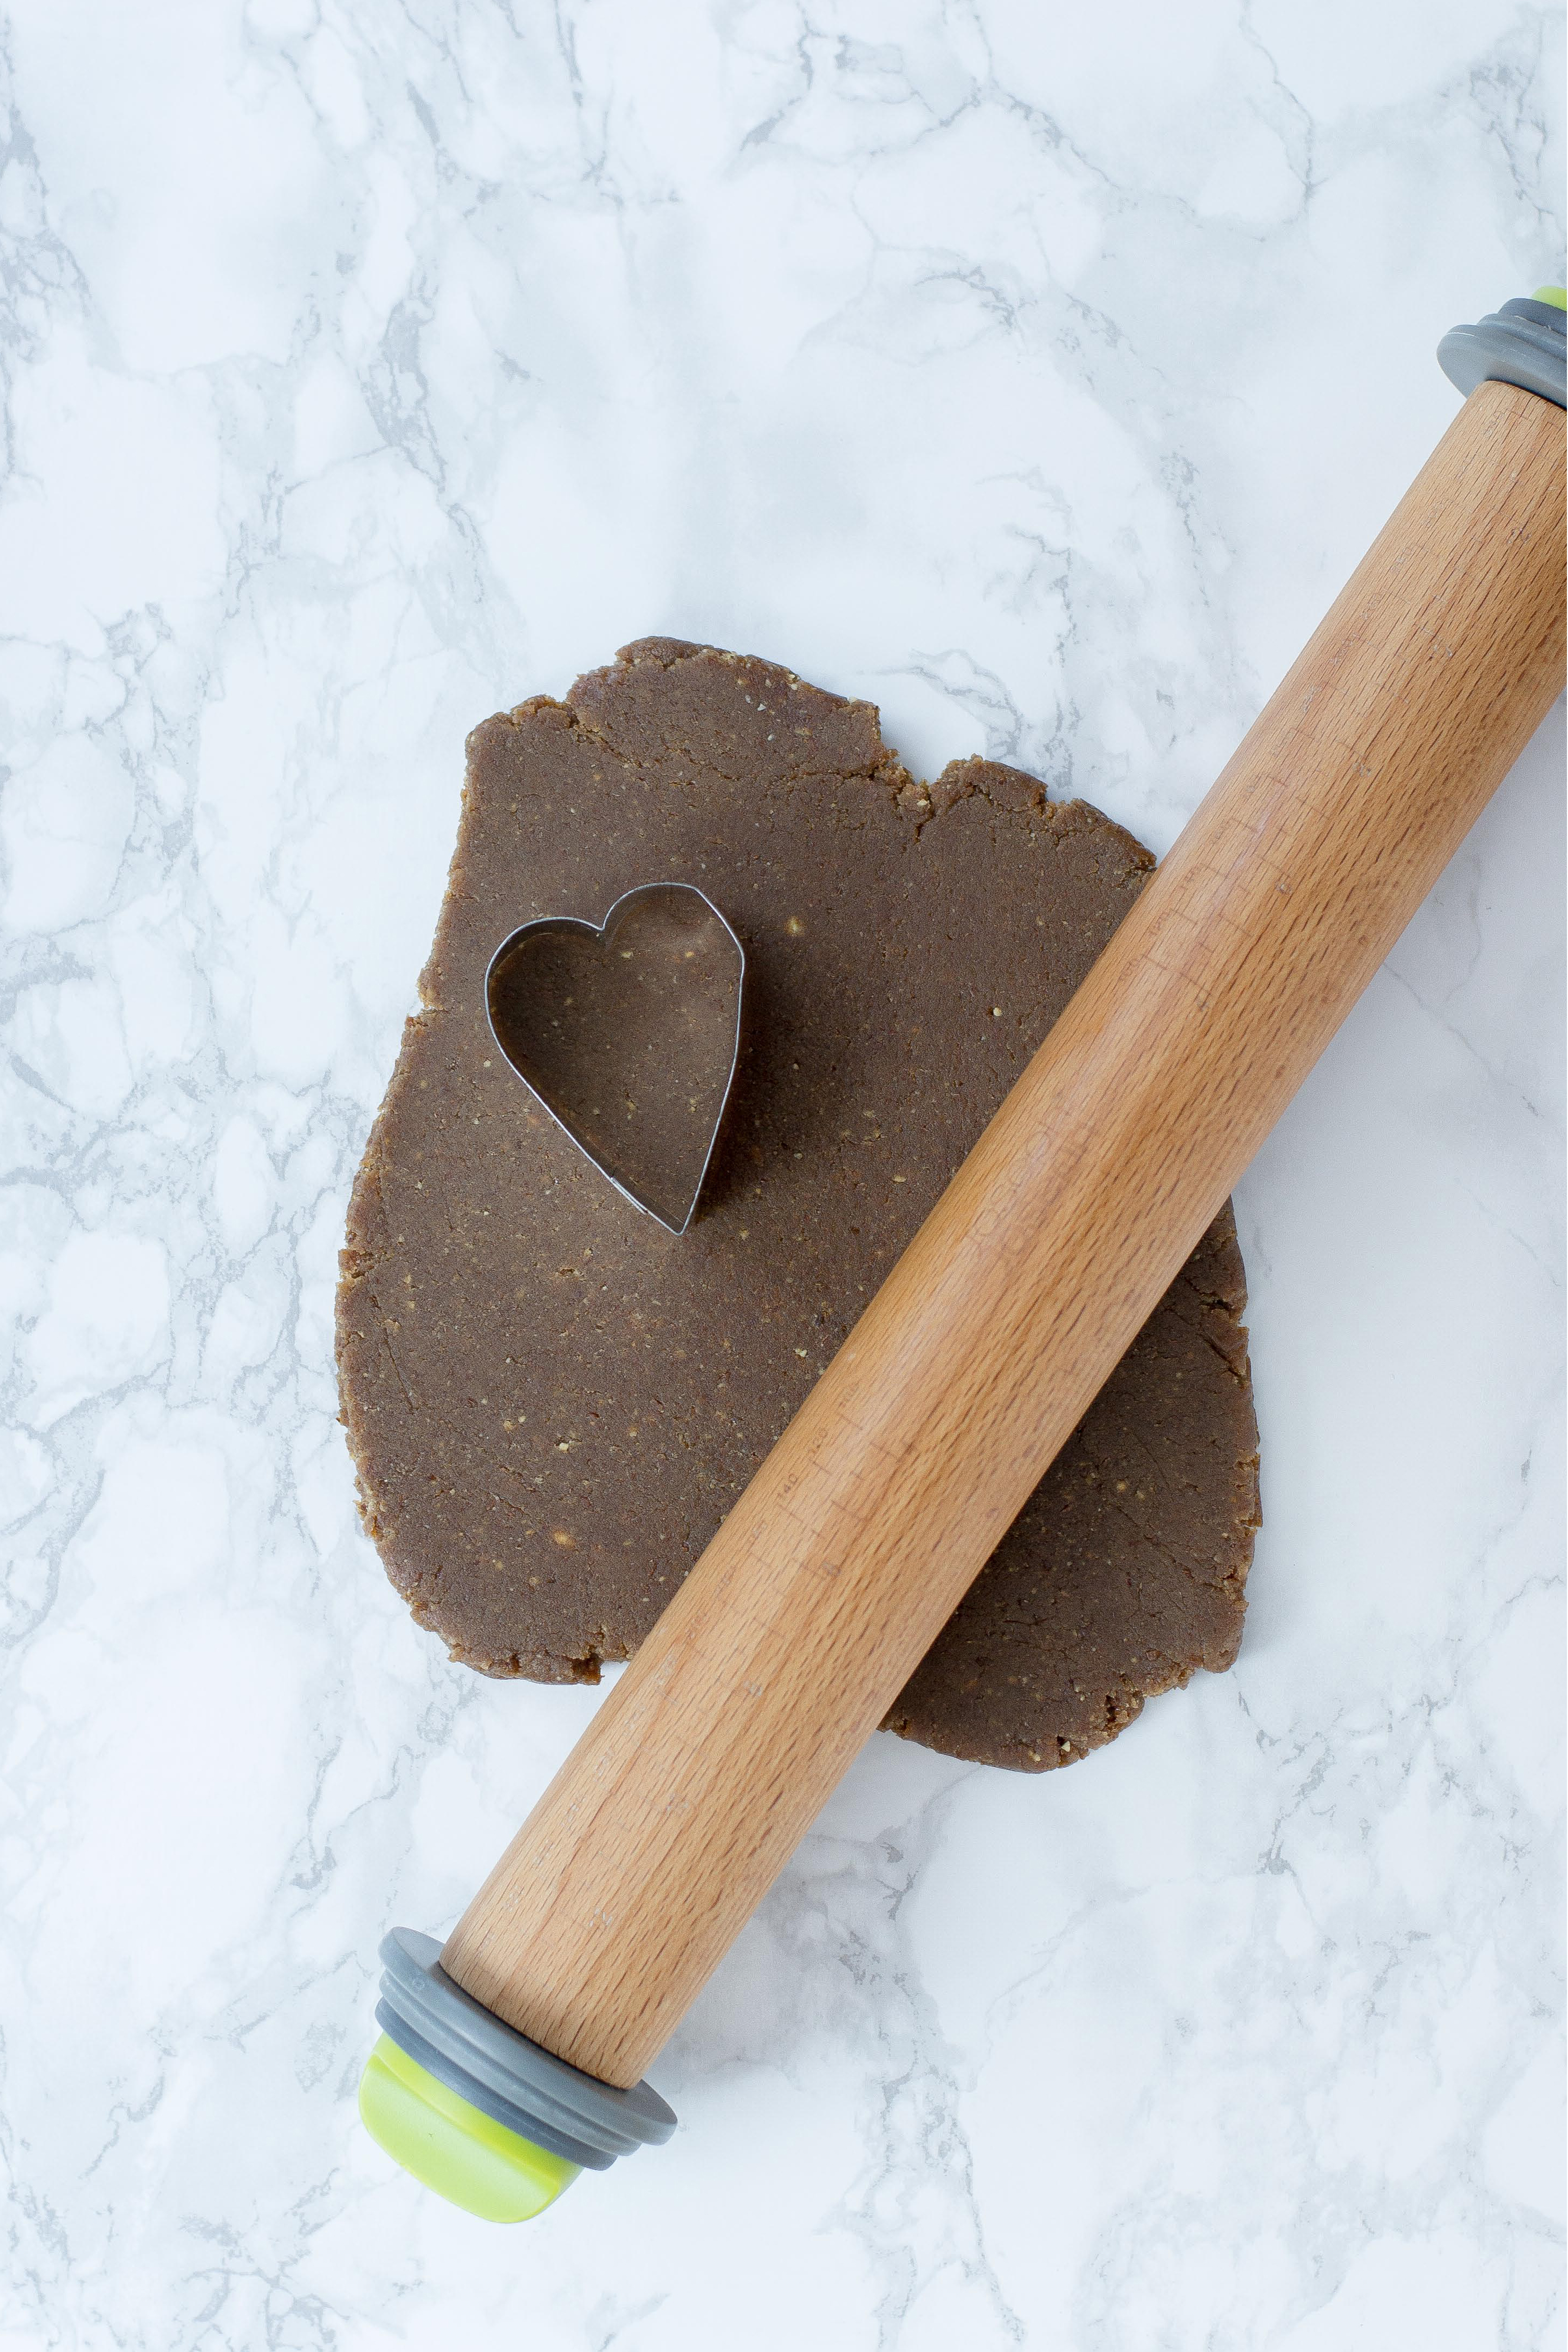 Healthy Salted Caramel Chocolate Hearts. Healthy candy to make for your Valentine! The mock caramel filling is free of refined sugar. | QueenofMyKitchen.com #chocolate #valentinesday #caramel #valentine #valentinecraft